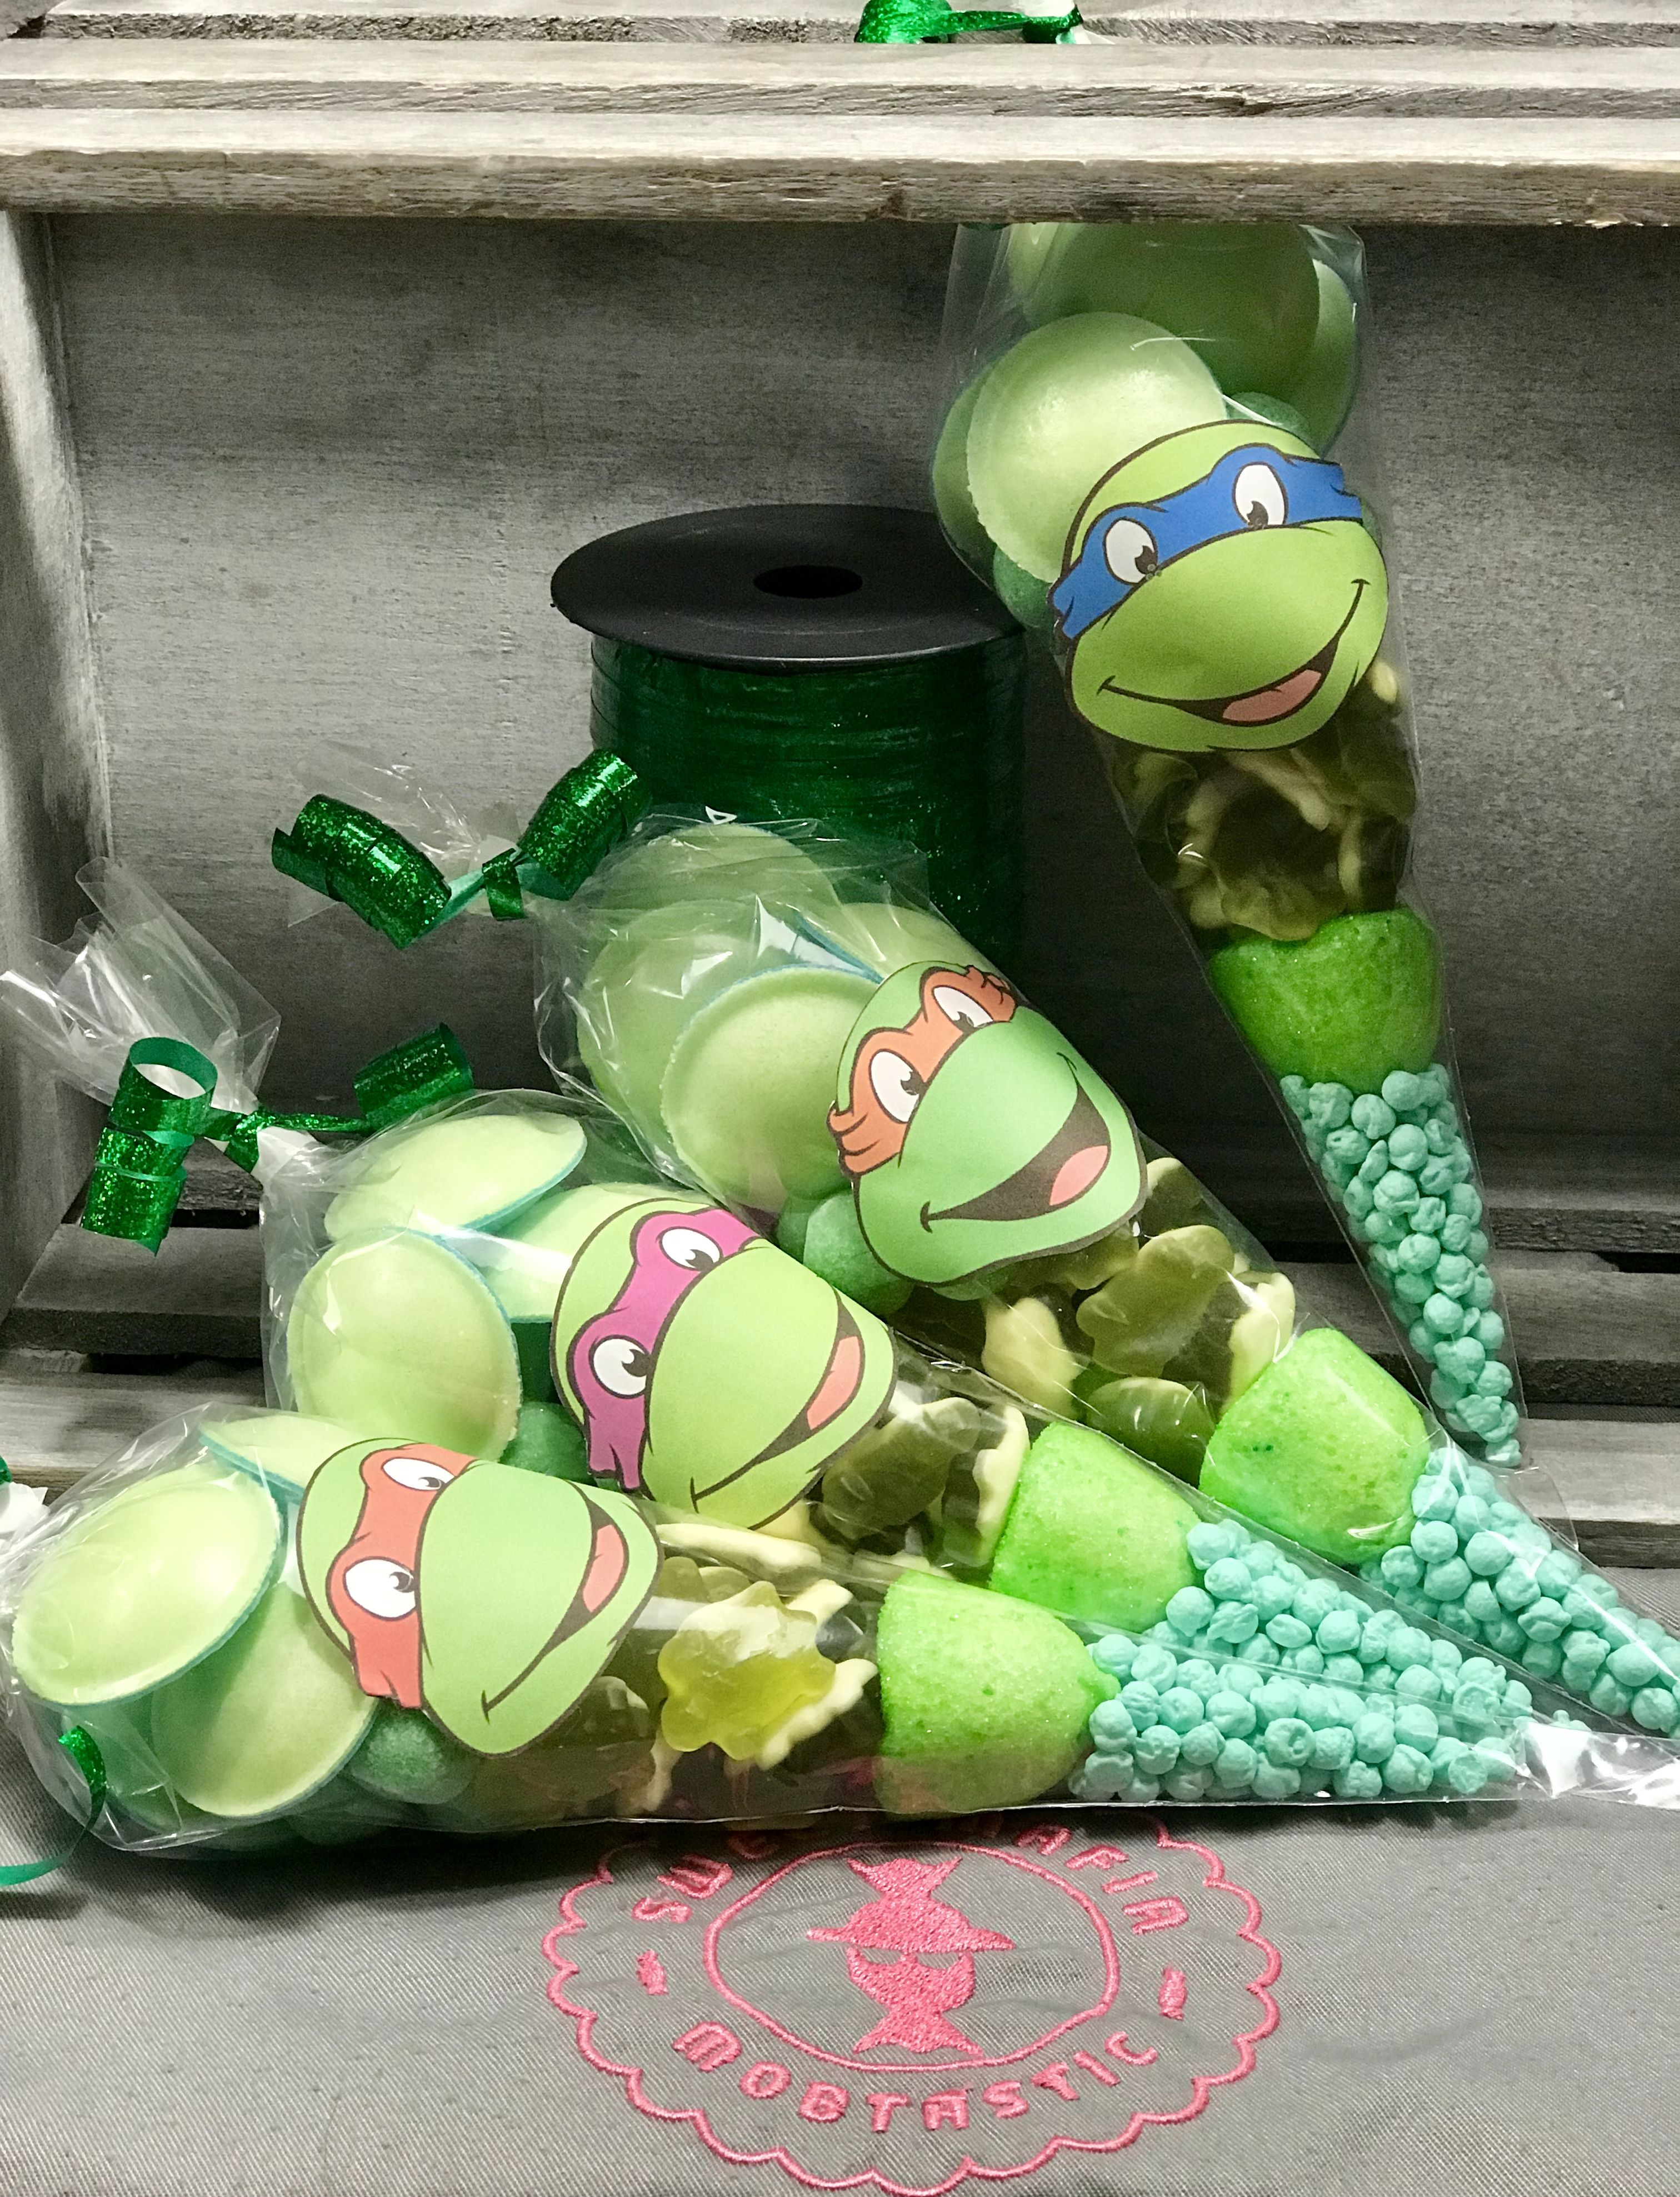 Tmnt Are Back Again Get Your Party Favors On Etsy By Sweet Mafia Ninja Turtles Birthday Party Kids Party Gift Turtle Birthday Parties